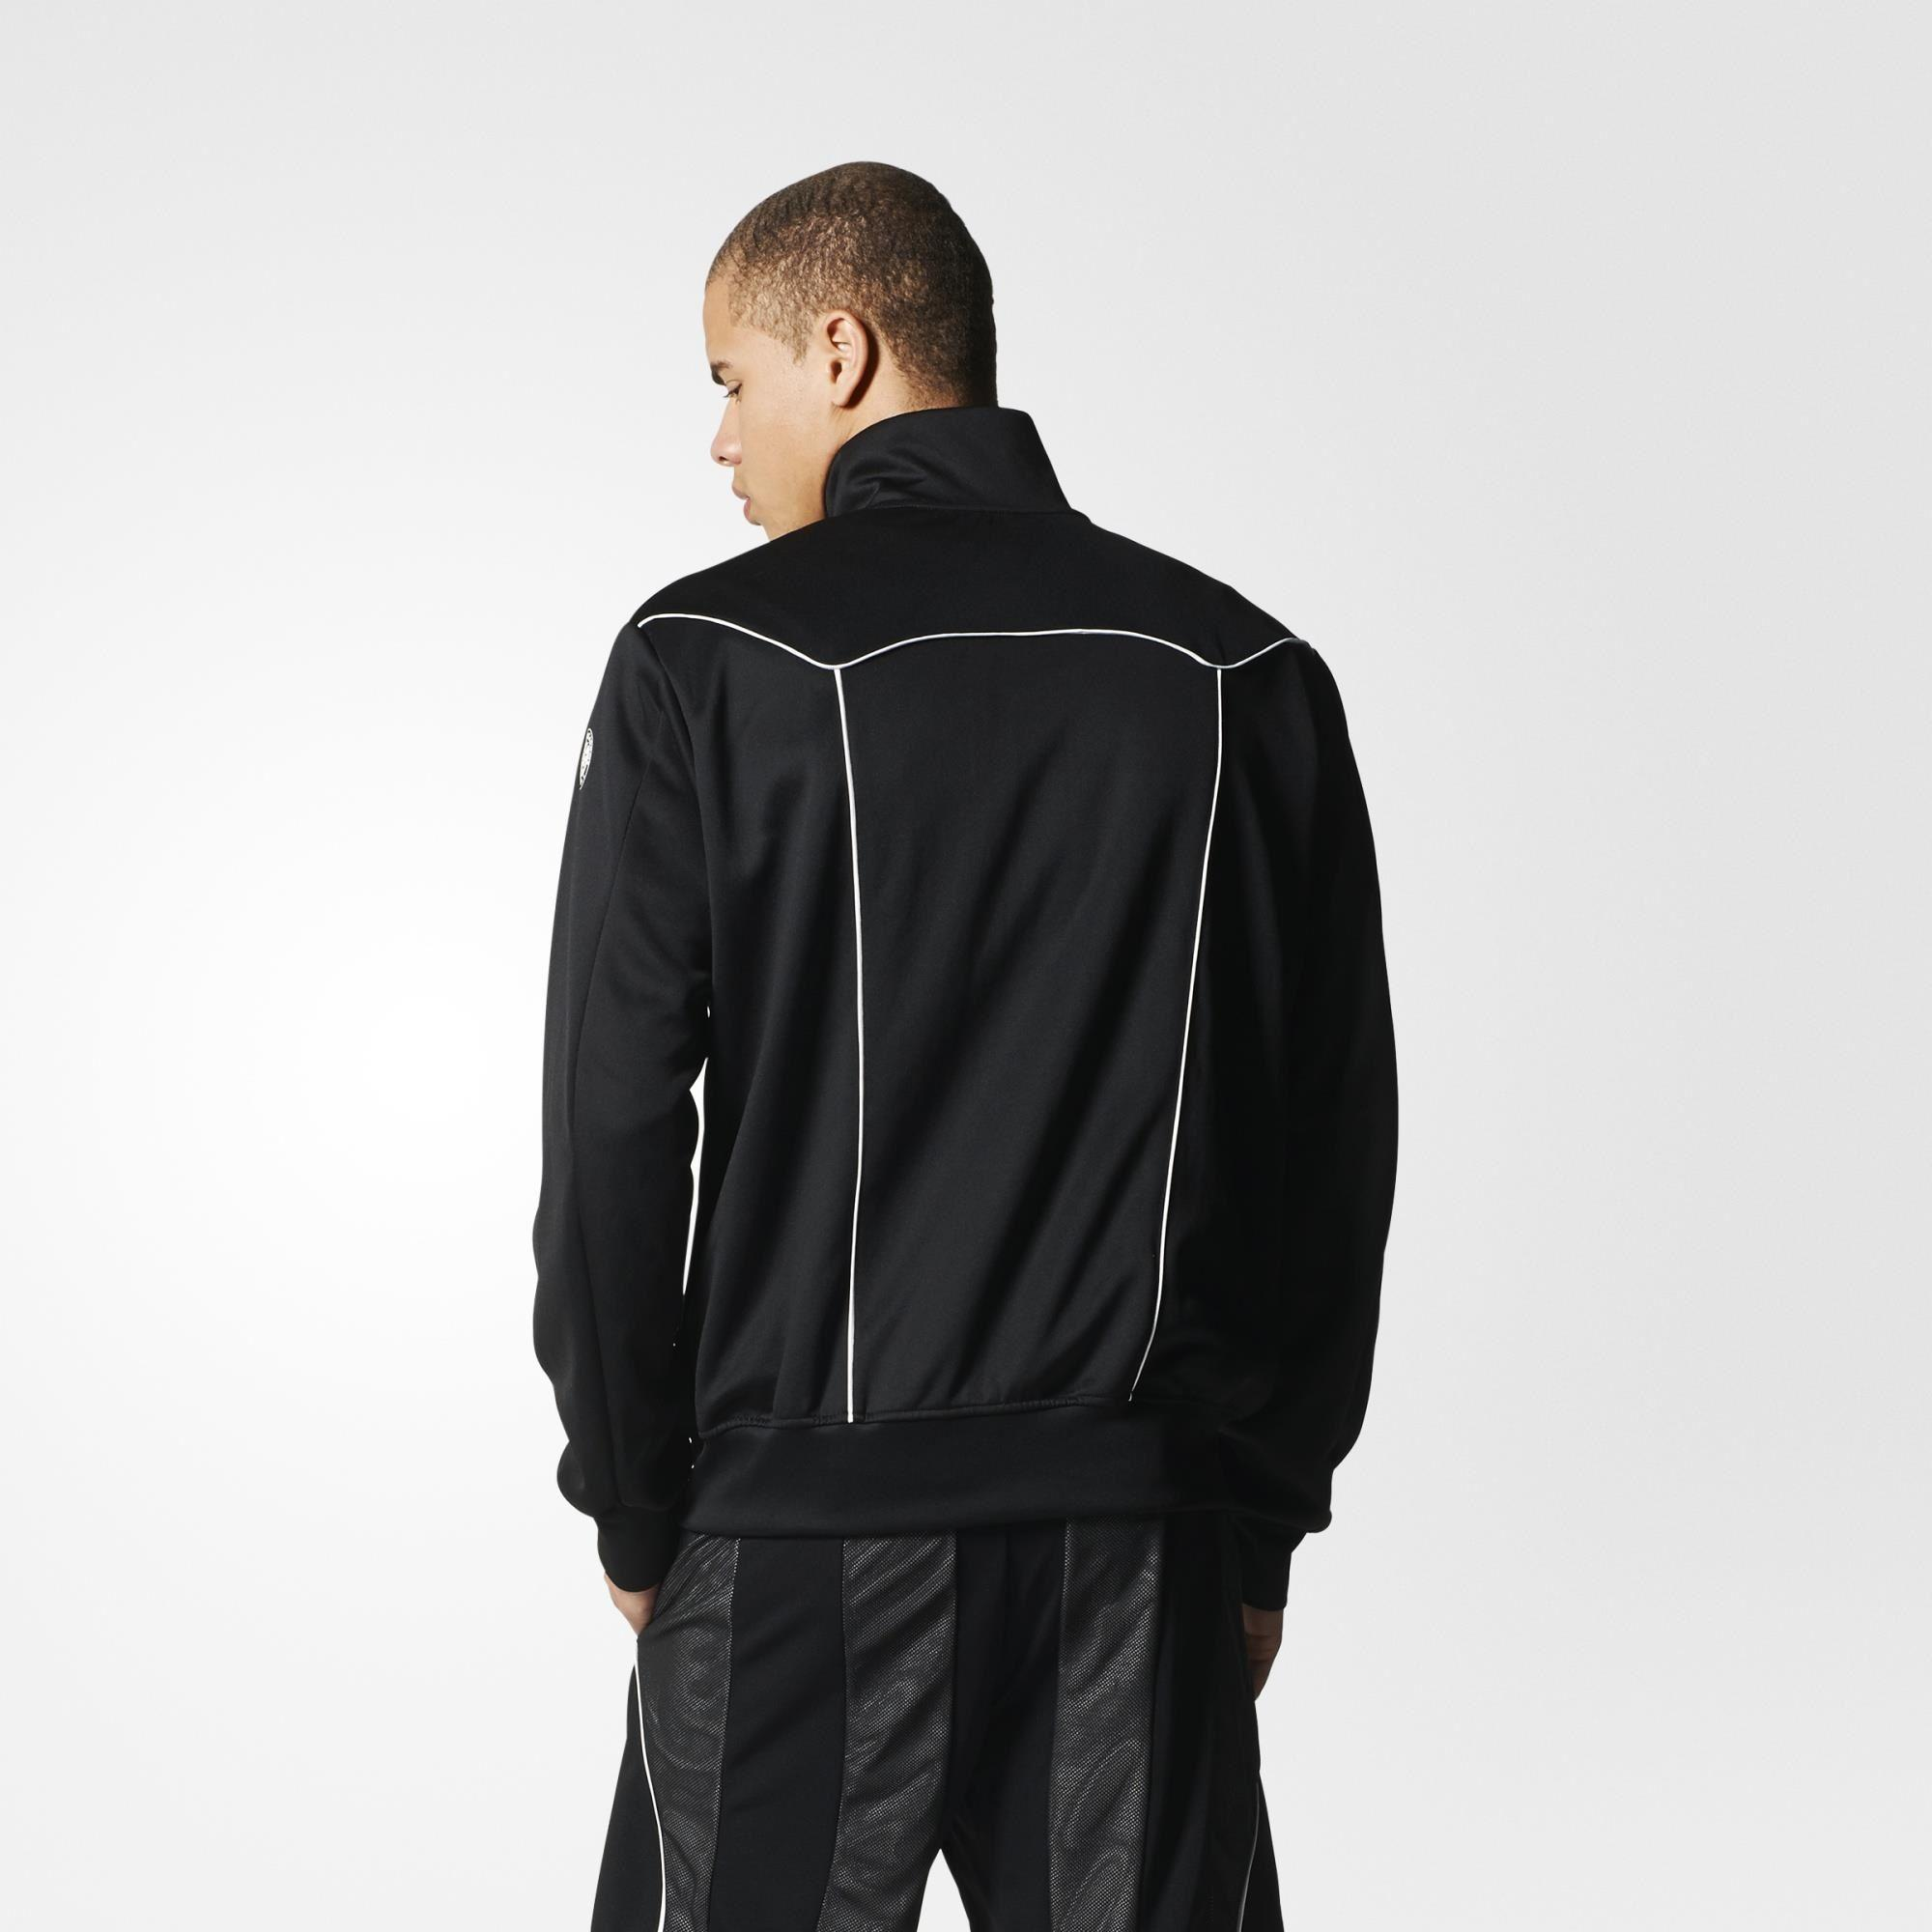 99be4e66d4196 Adidas Mens Y-3 Roland Garros Jacket - Black - Tennisnuts.com